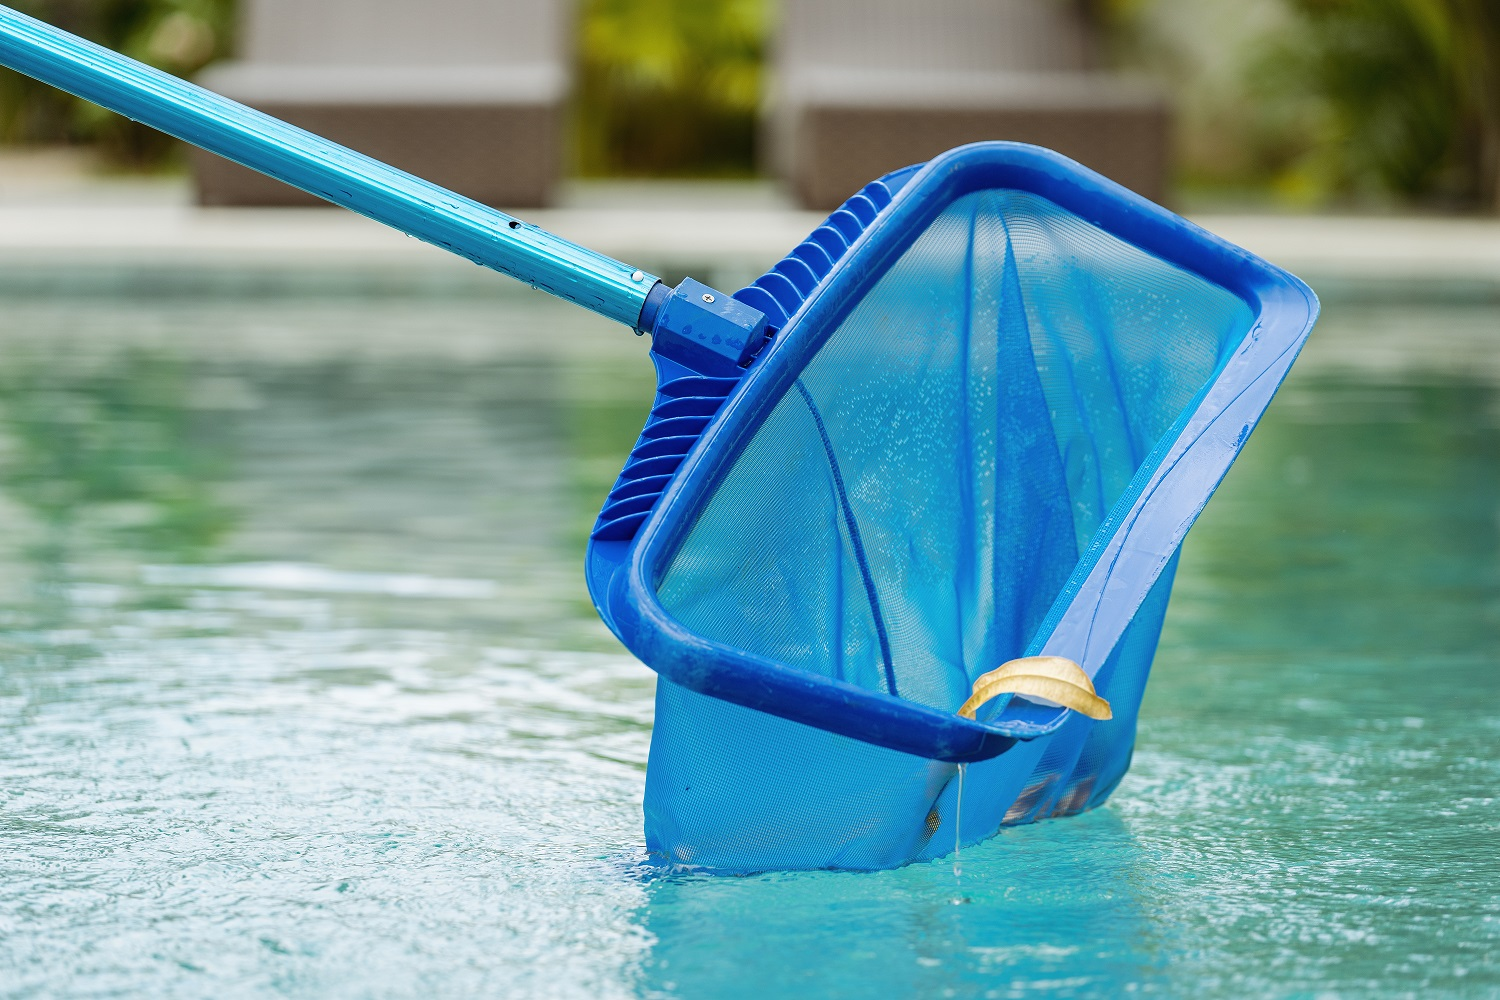 Cleaning swimming pool of fallen leaves with special skimmer mesh equipment